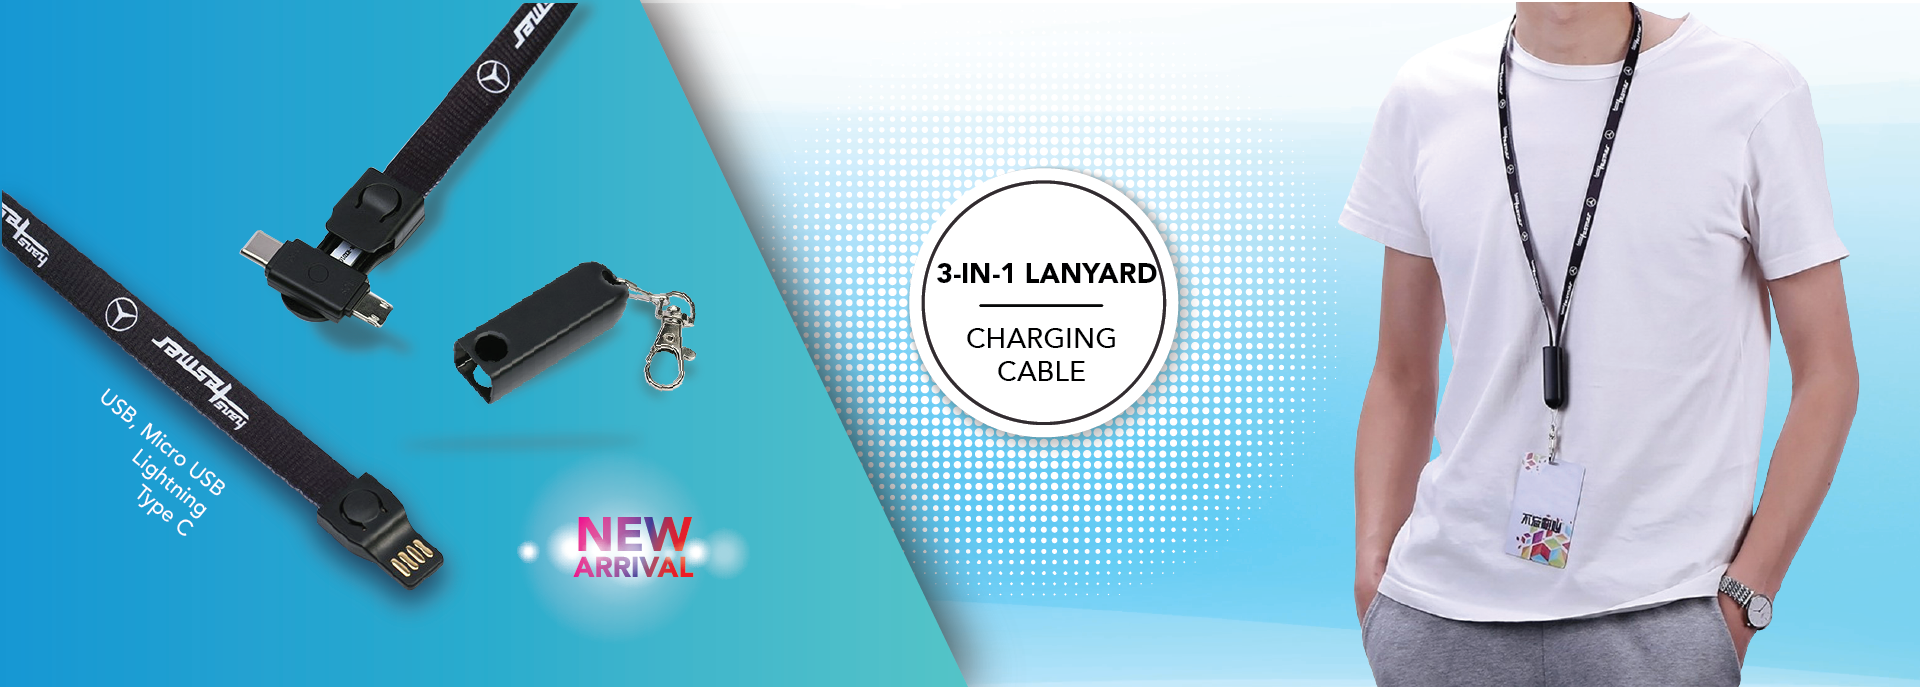 Lanyard with charging cable